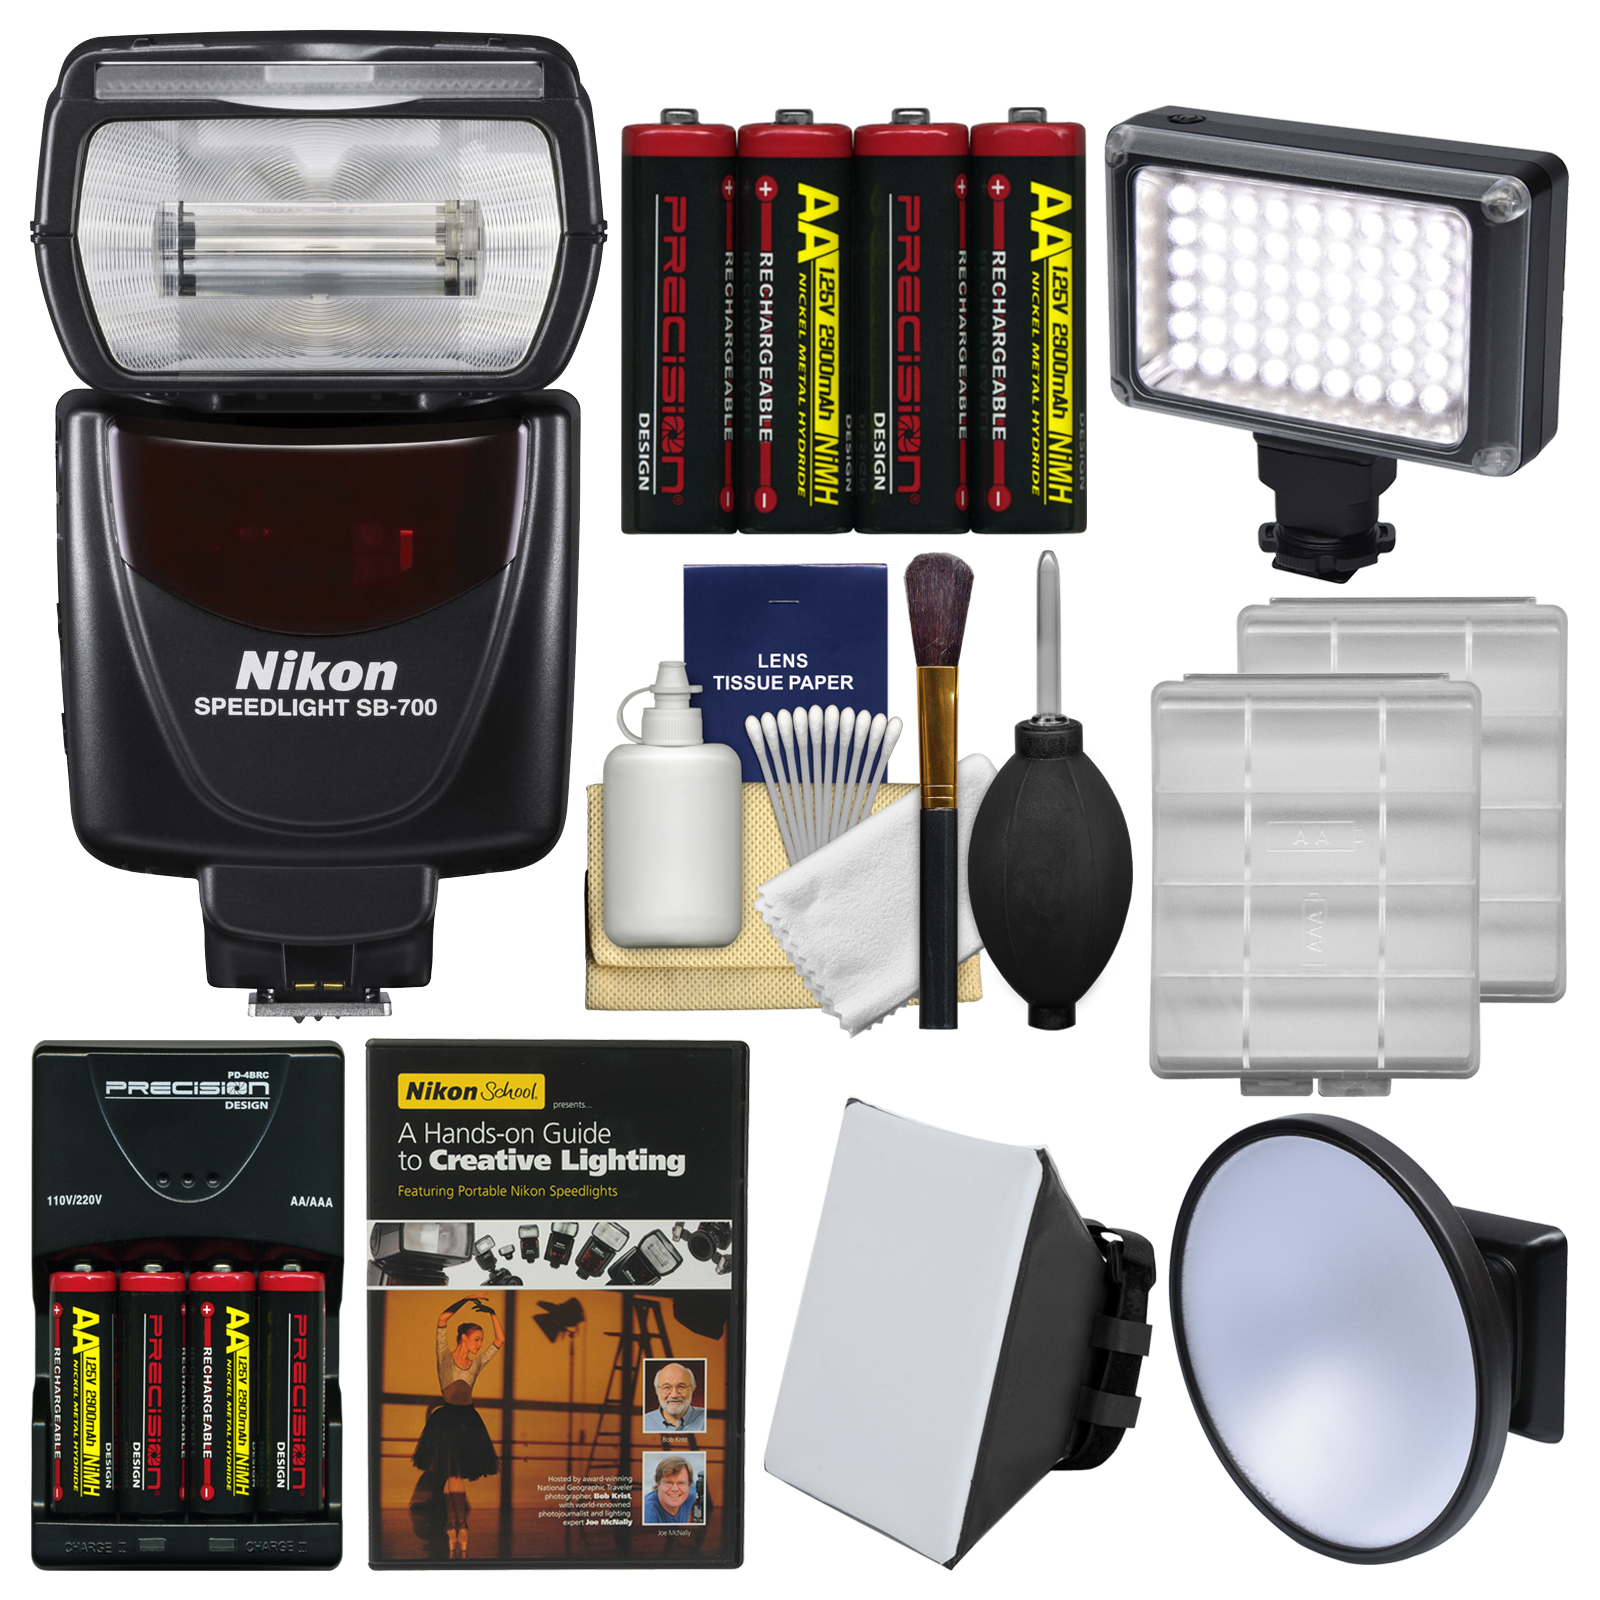 Nikon SB-700 AF Speedlight Flash with Soft Box + Video Light + Diffuser + Batteries & Charger + DVD + Kit